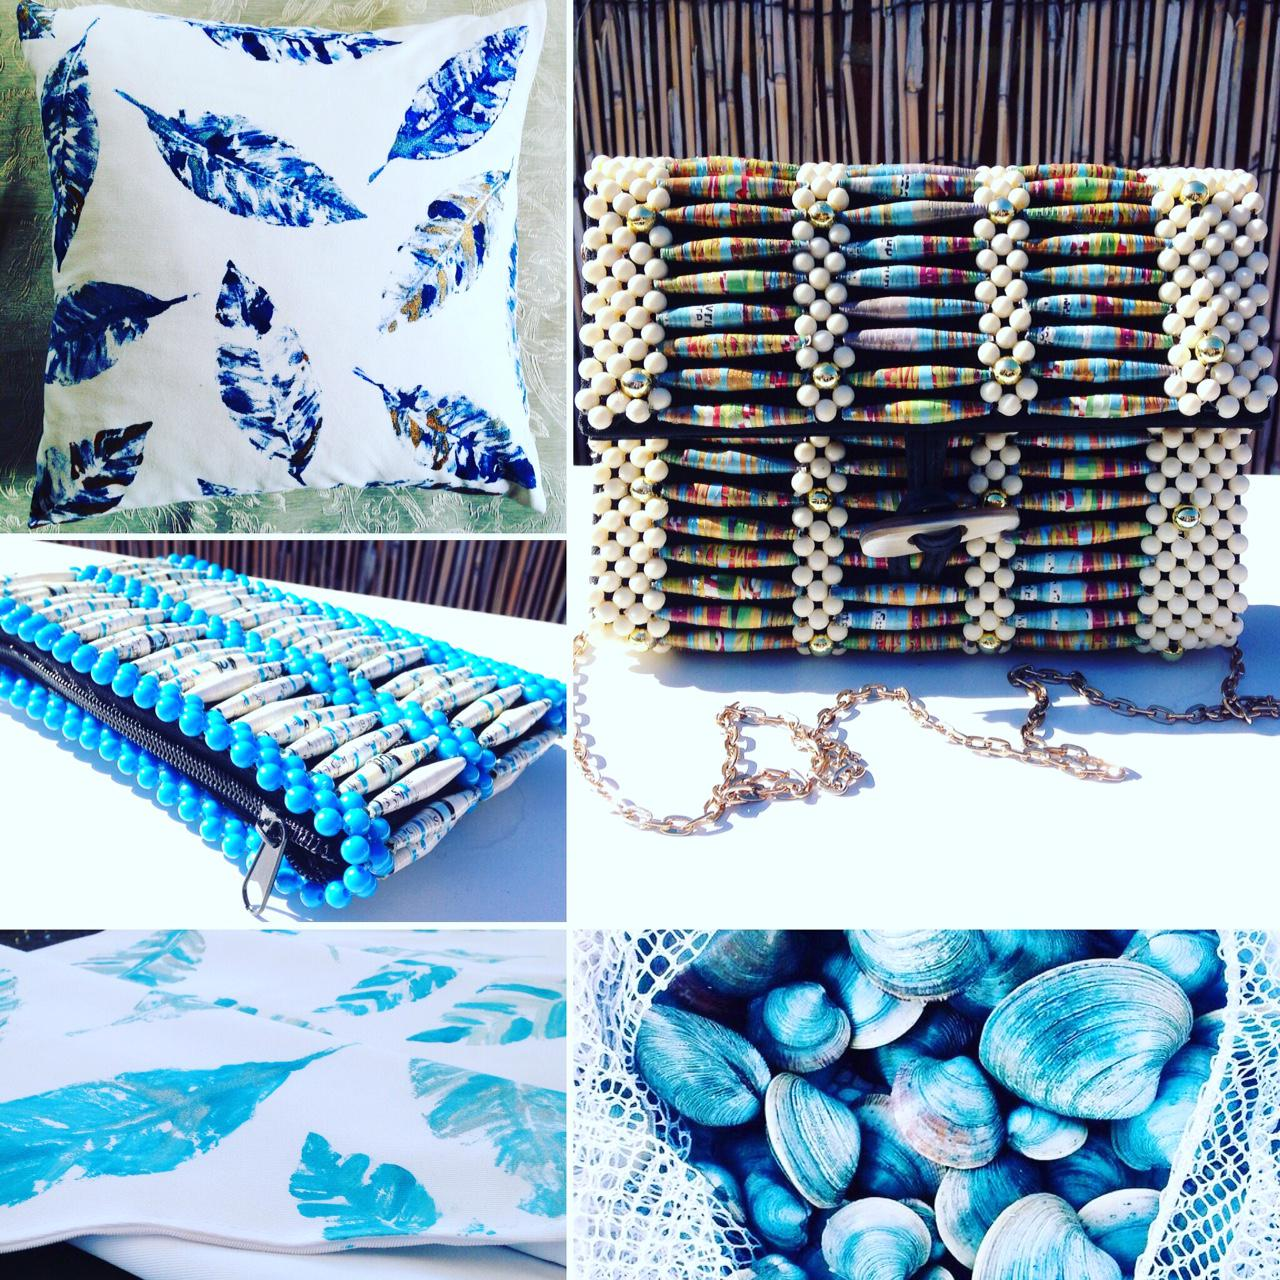 BEAUTIFUL & BLUE! Recycled Magazine/Leather Handbags & Textile Designs